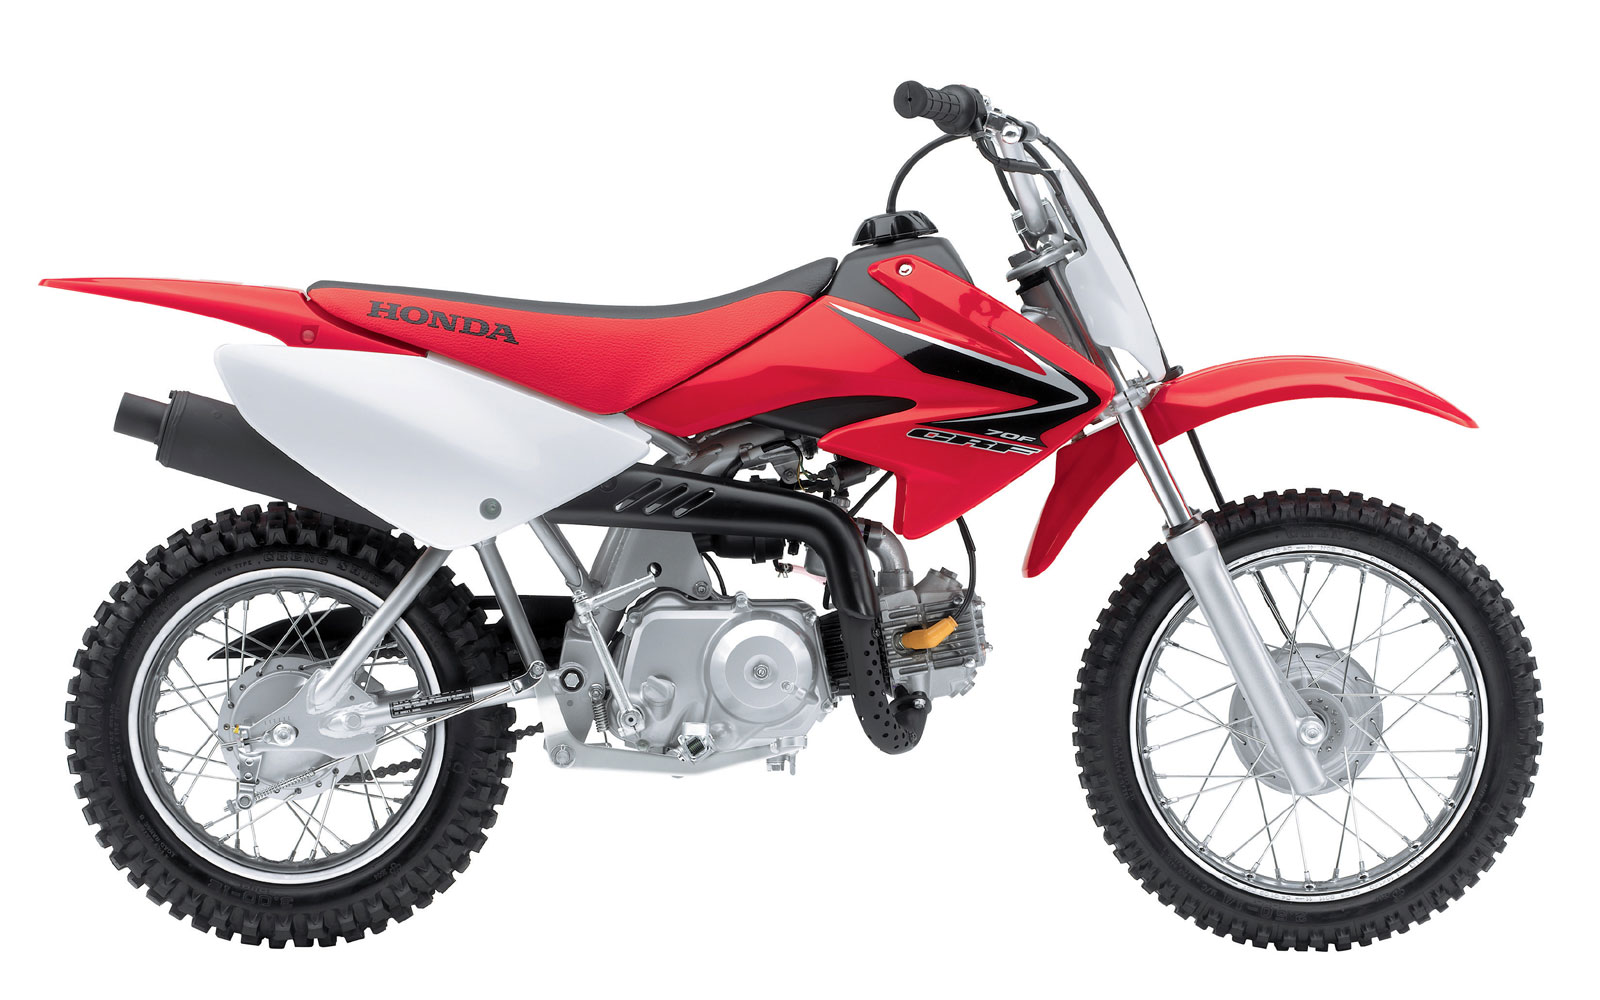 Honda Crf70 70cc Dirt Bike Parts Monster Scooter Parts